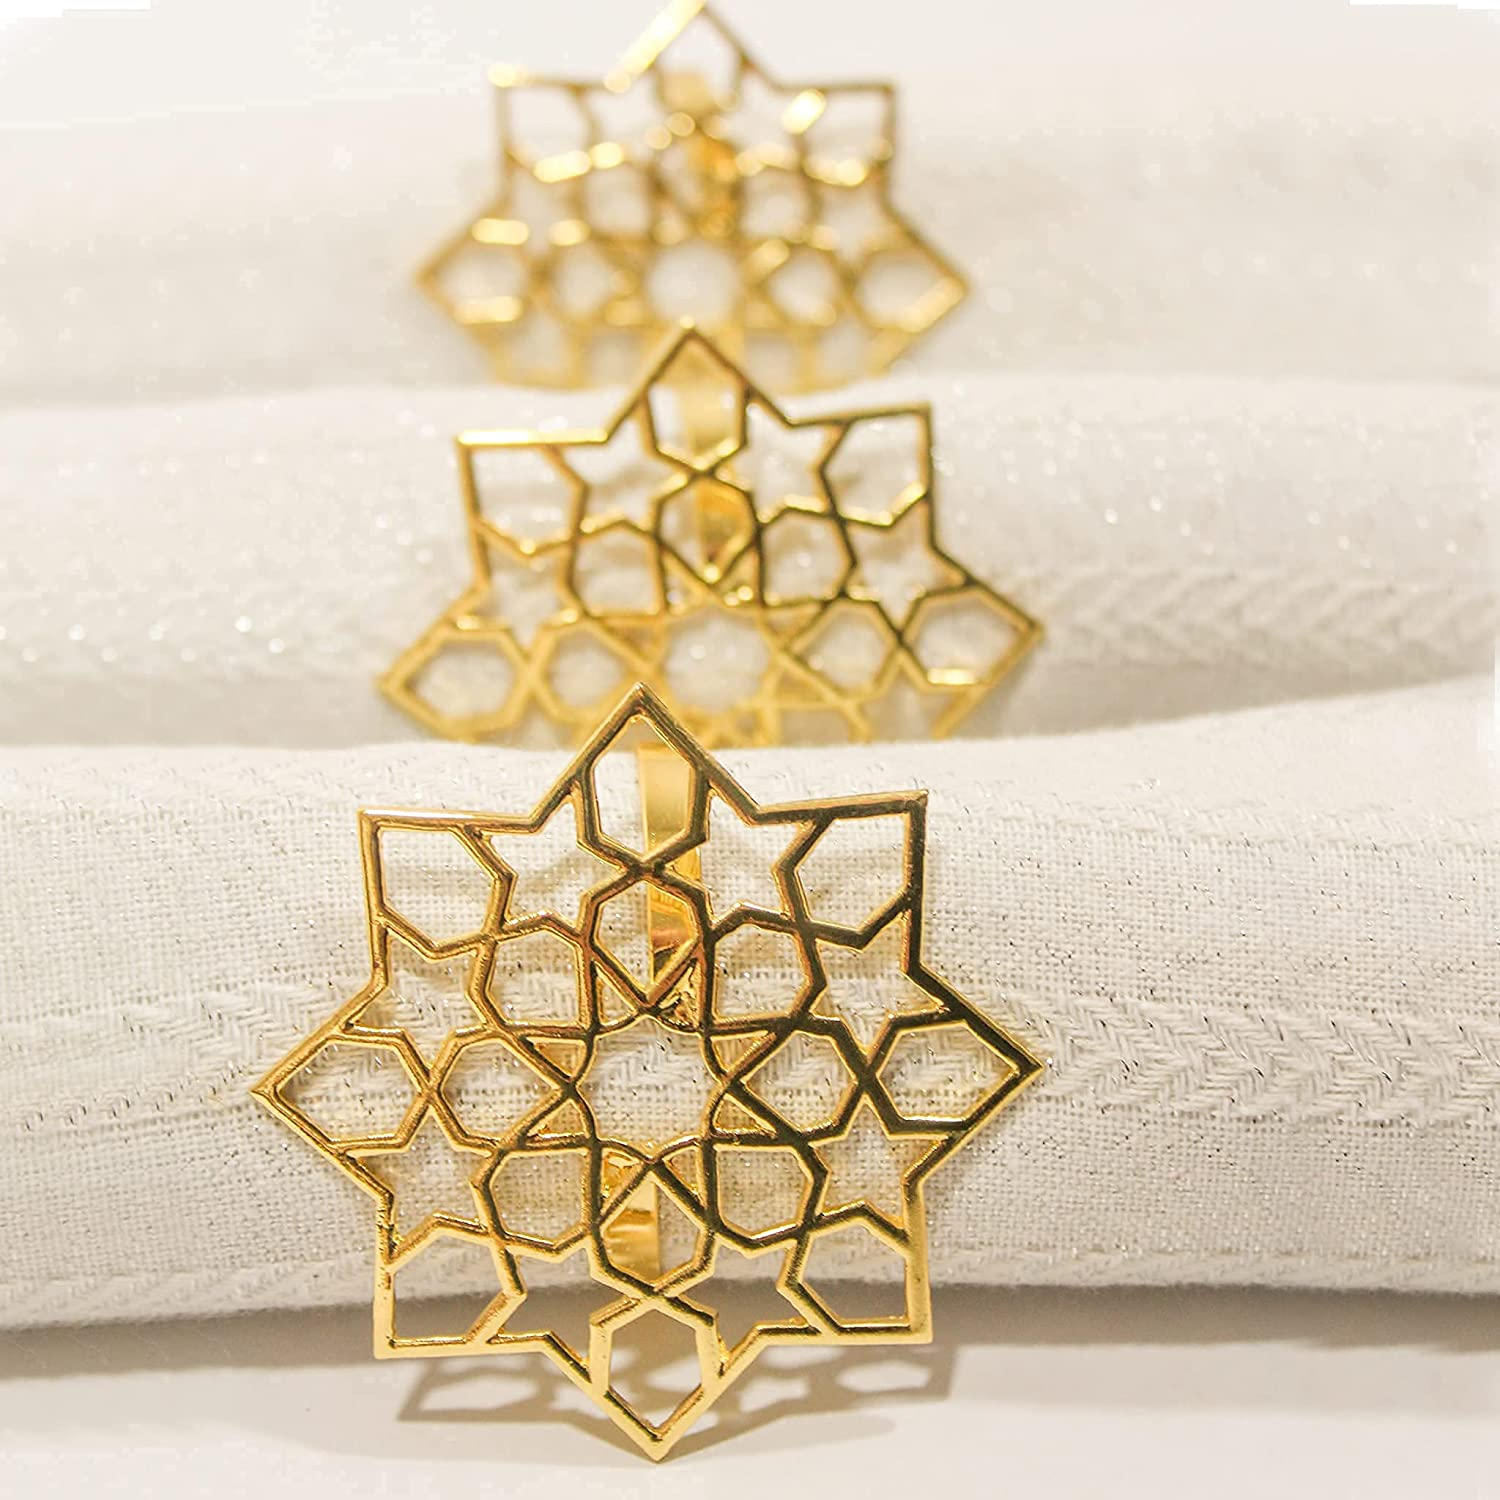 Suqoon Gold Napkin Rings Set of In Cheap super special price a popularity Party 6 Décor. Dinner Table